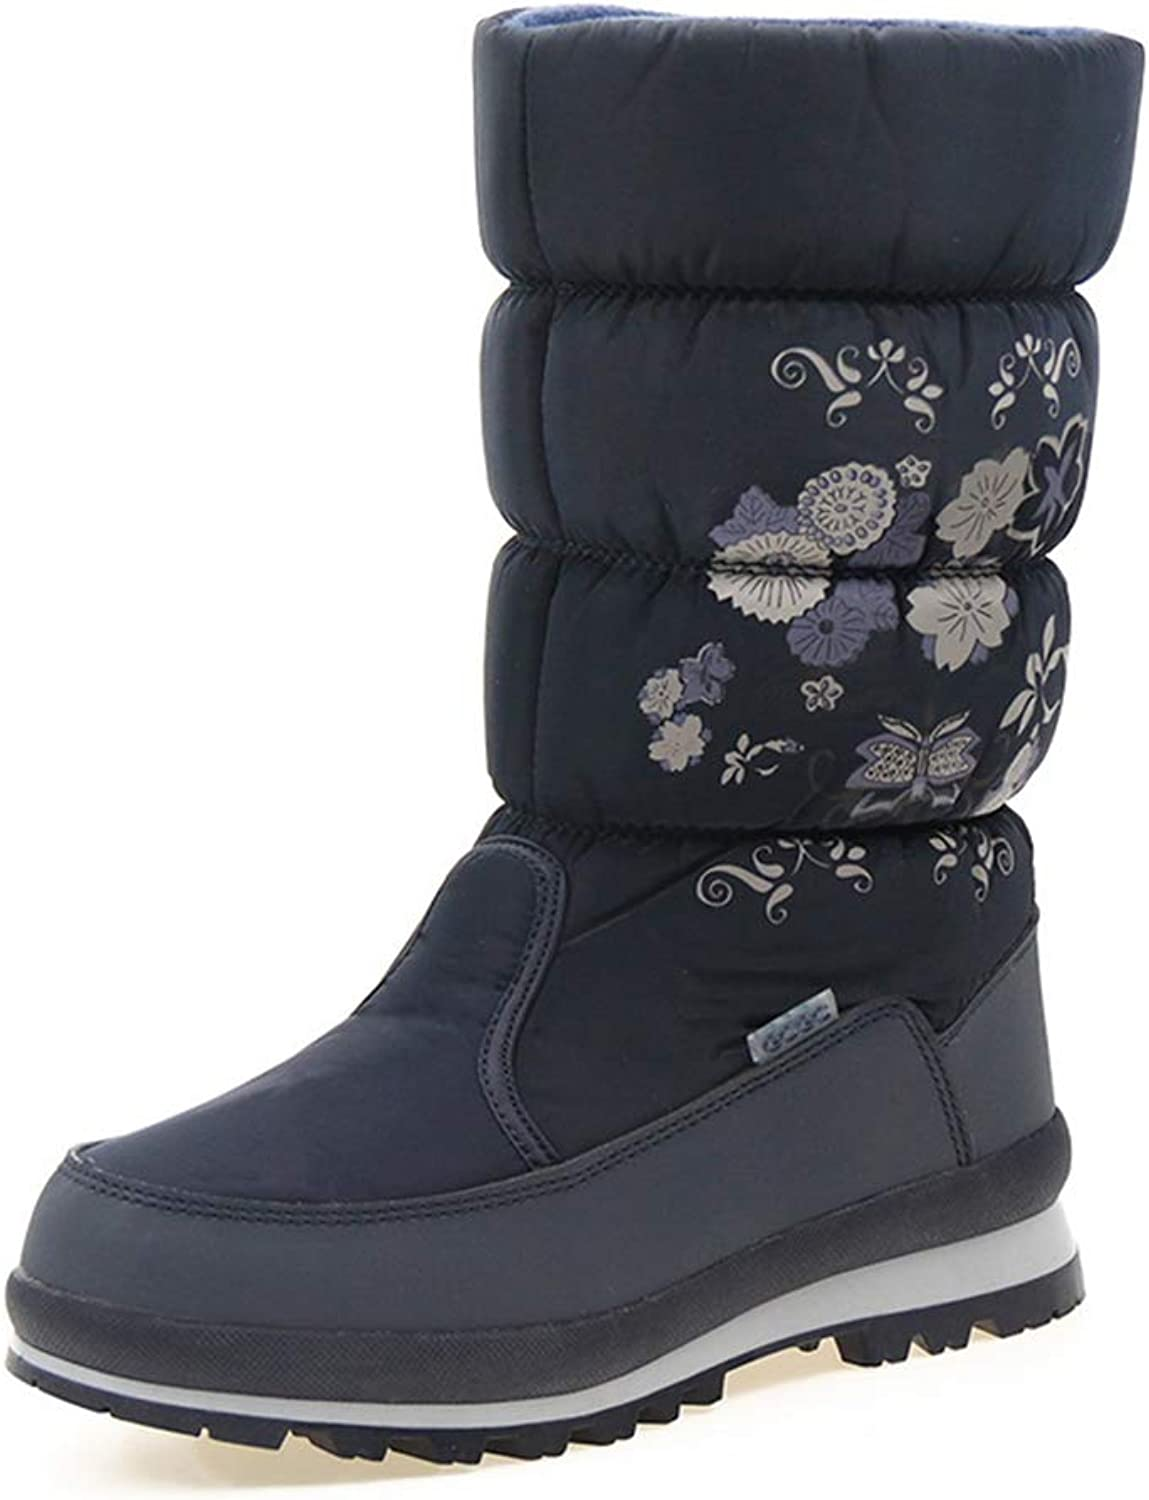 Women's Snow Boots Zipper Flower Floral Winter Waterfroof Plush Warm Anti-Slip Round Toe Female Mid Calf Boots